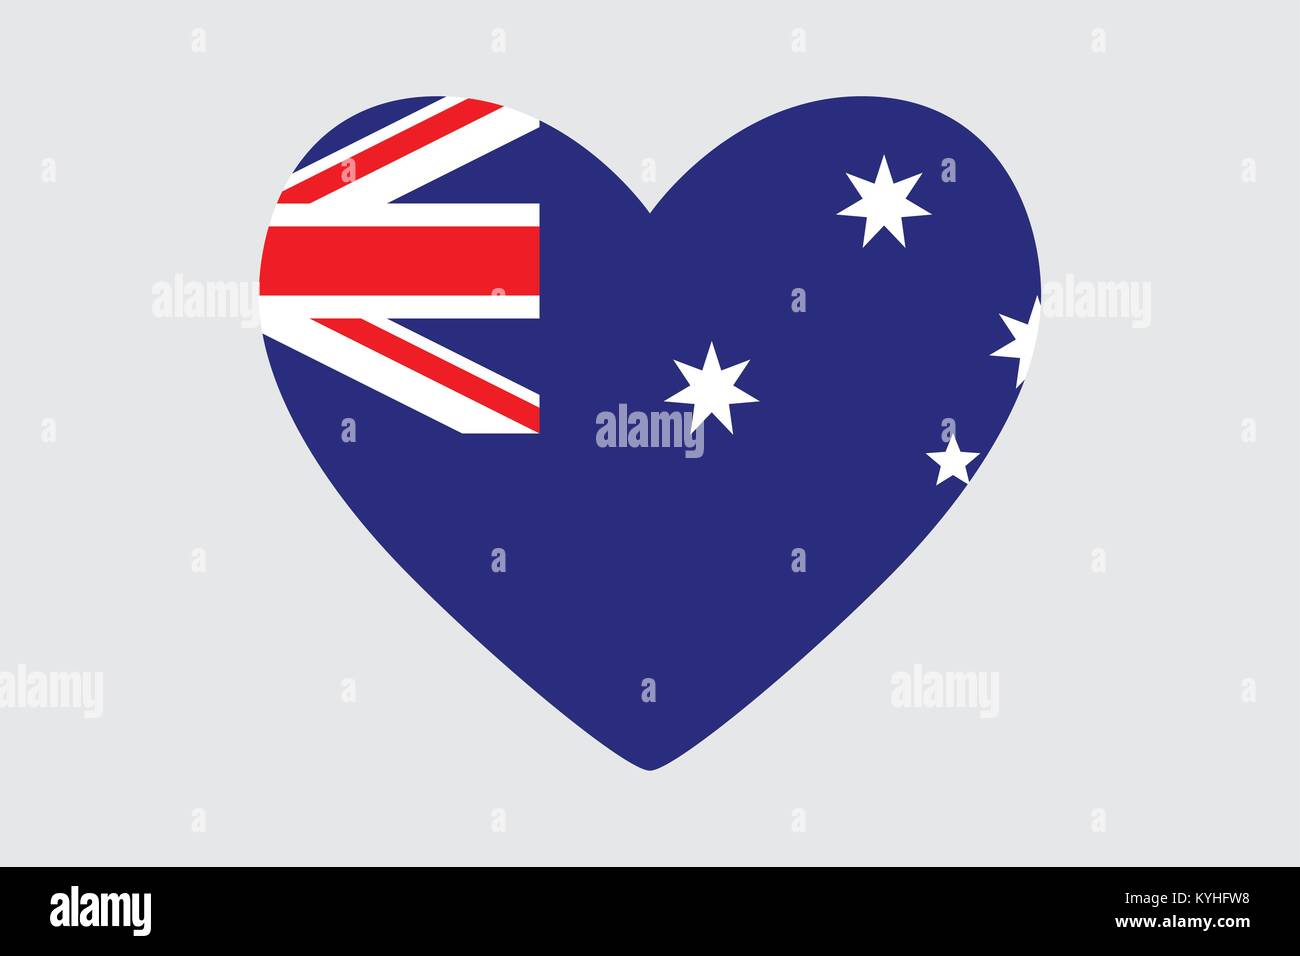 Heart in colors and symbols of the australia flag vector stock heart in colors and symbols of the australia flag vector biocorpaavc Choice Image